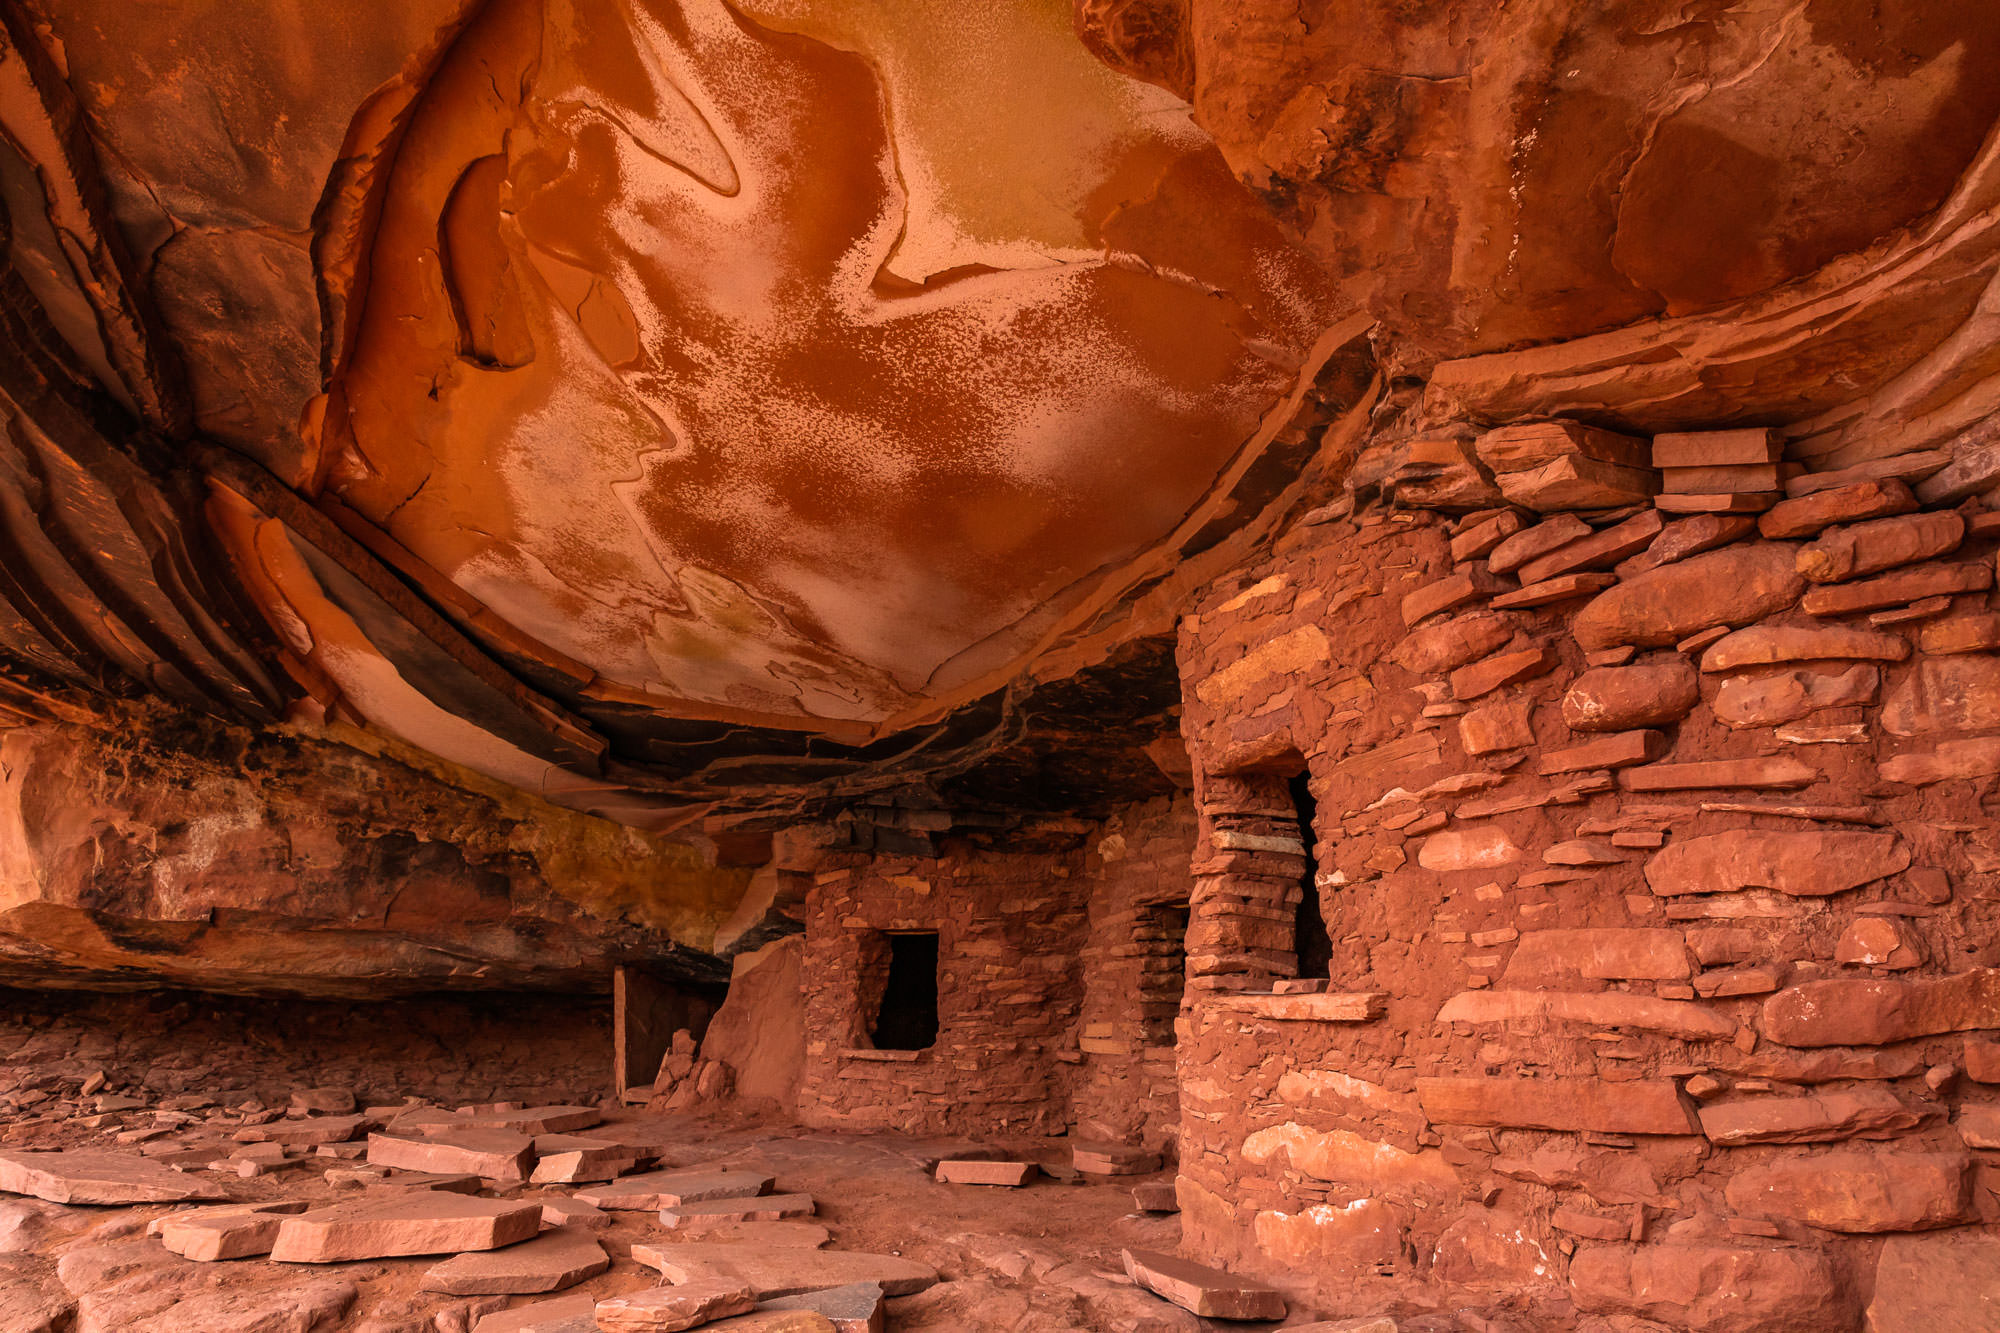 Fallen Roof Ruin - Bears Ears National Monument, UTImage by Don Metz @ www.donmetzphotography.com